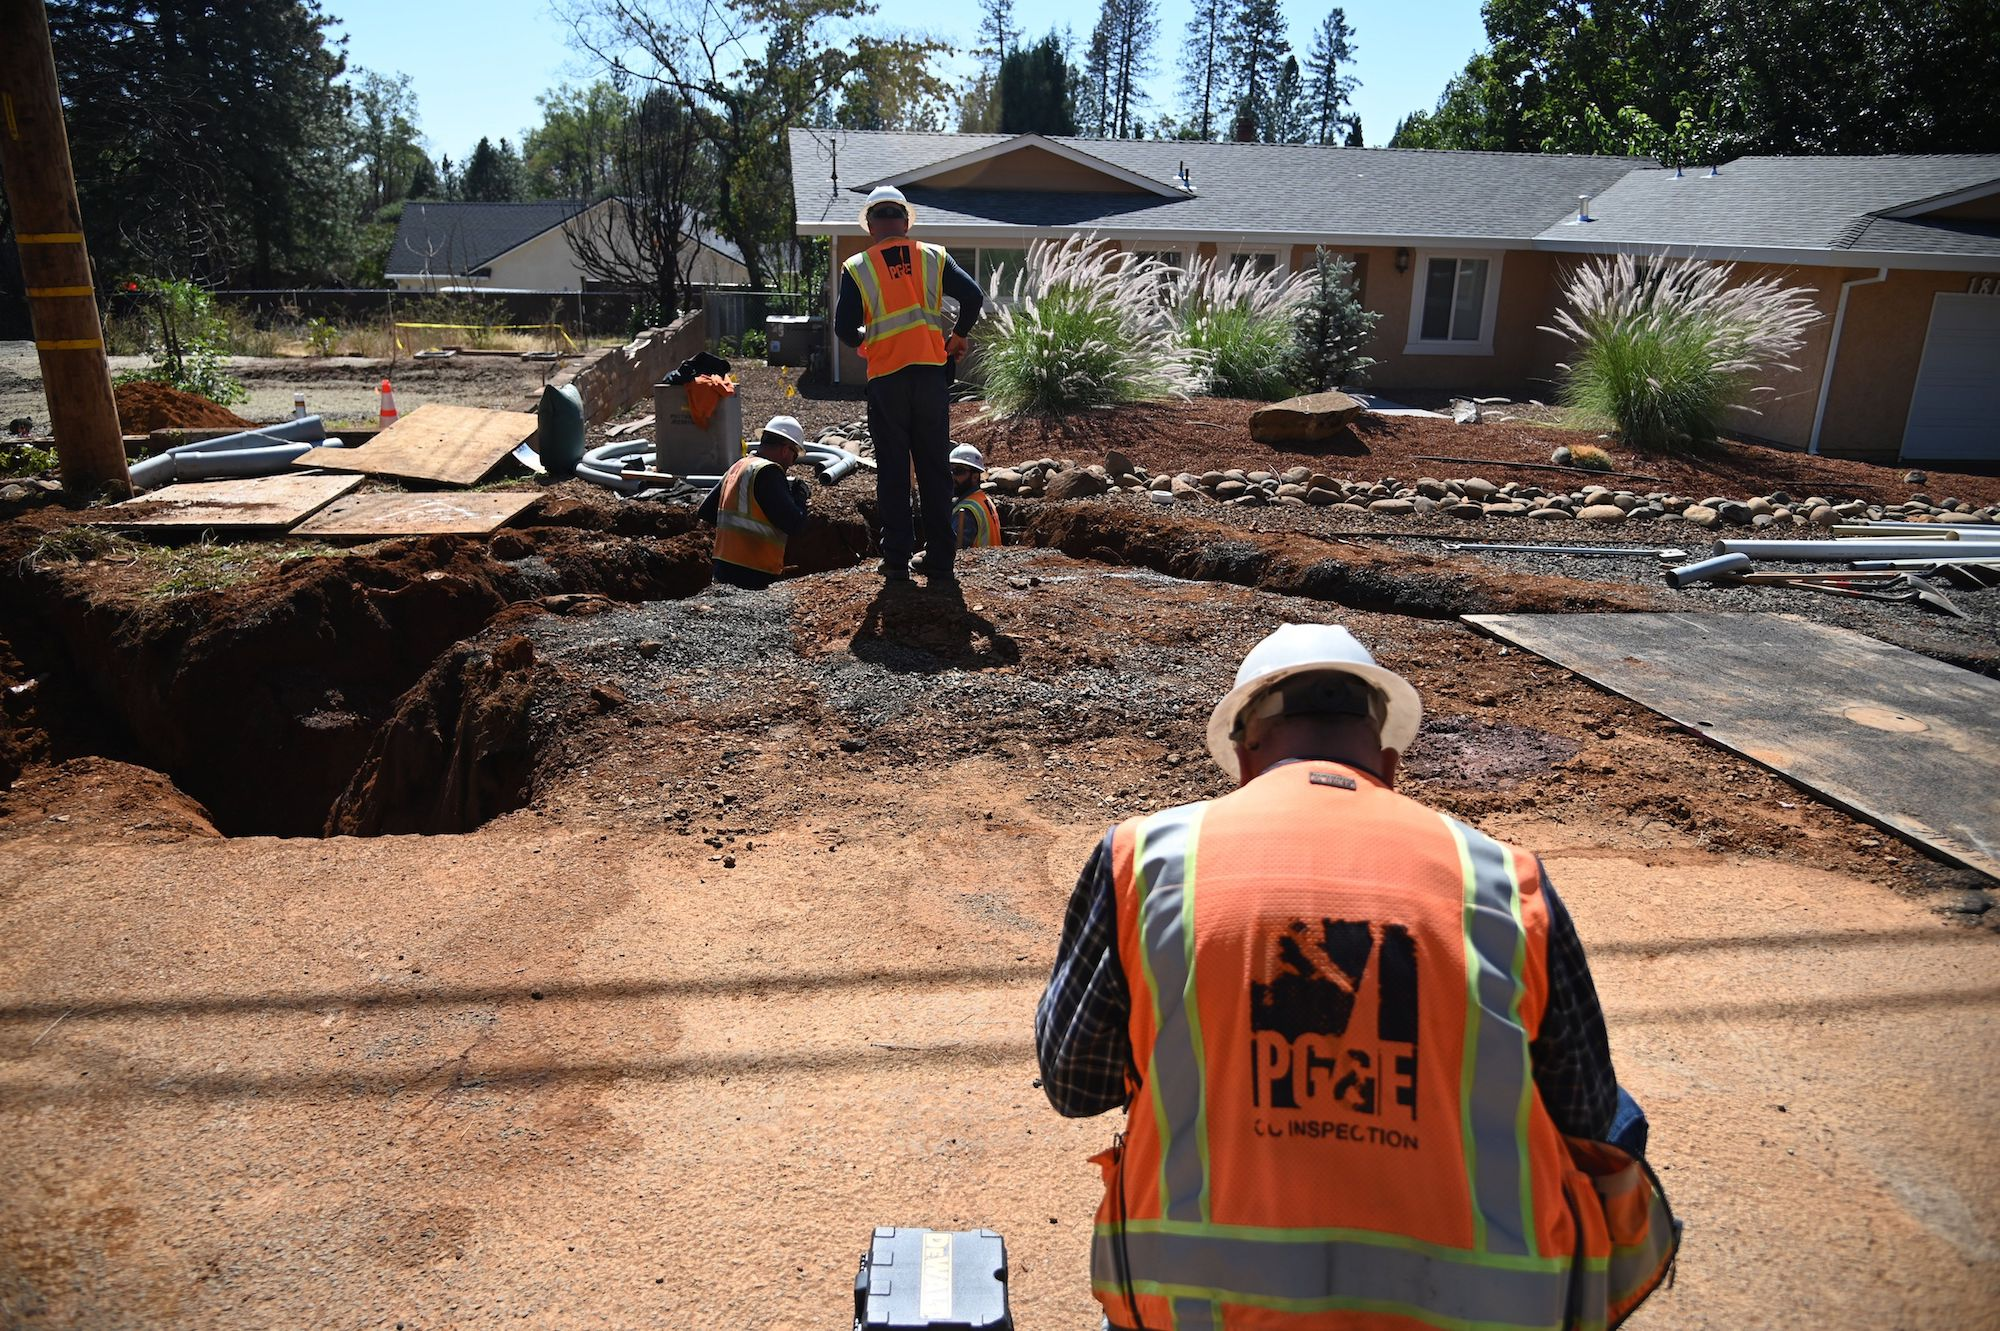 a person in an orange construction vest with PG&E on the back sits in front of a dirt path. In front of them, another worker is standing by a big hole in the dirt ground.